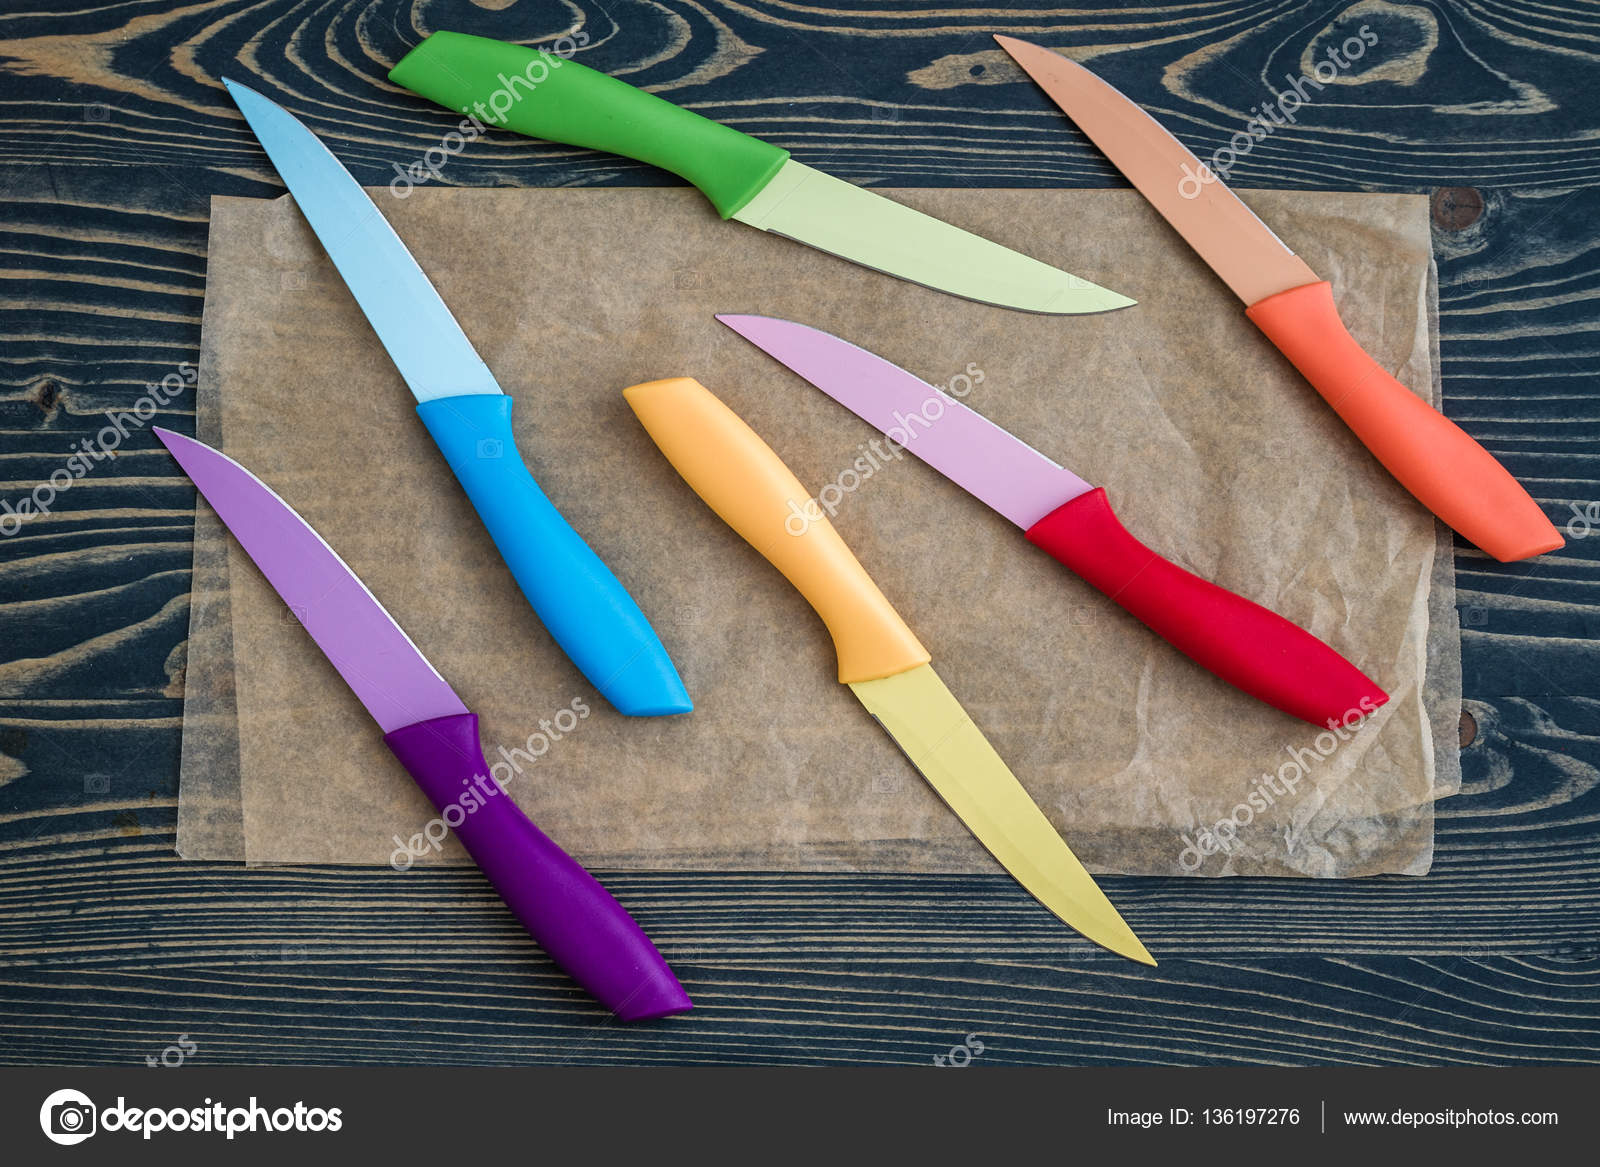 Colorful Kitchen Knives   Set Of Colorful Kitchen Knives Over Blue Wooden Background Stock